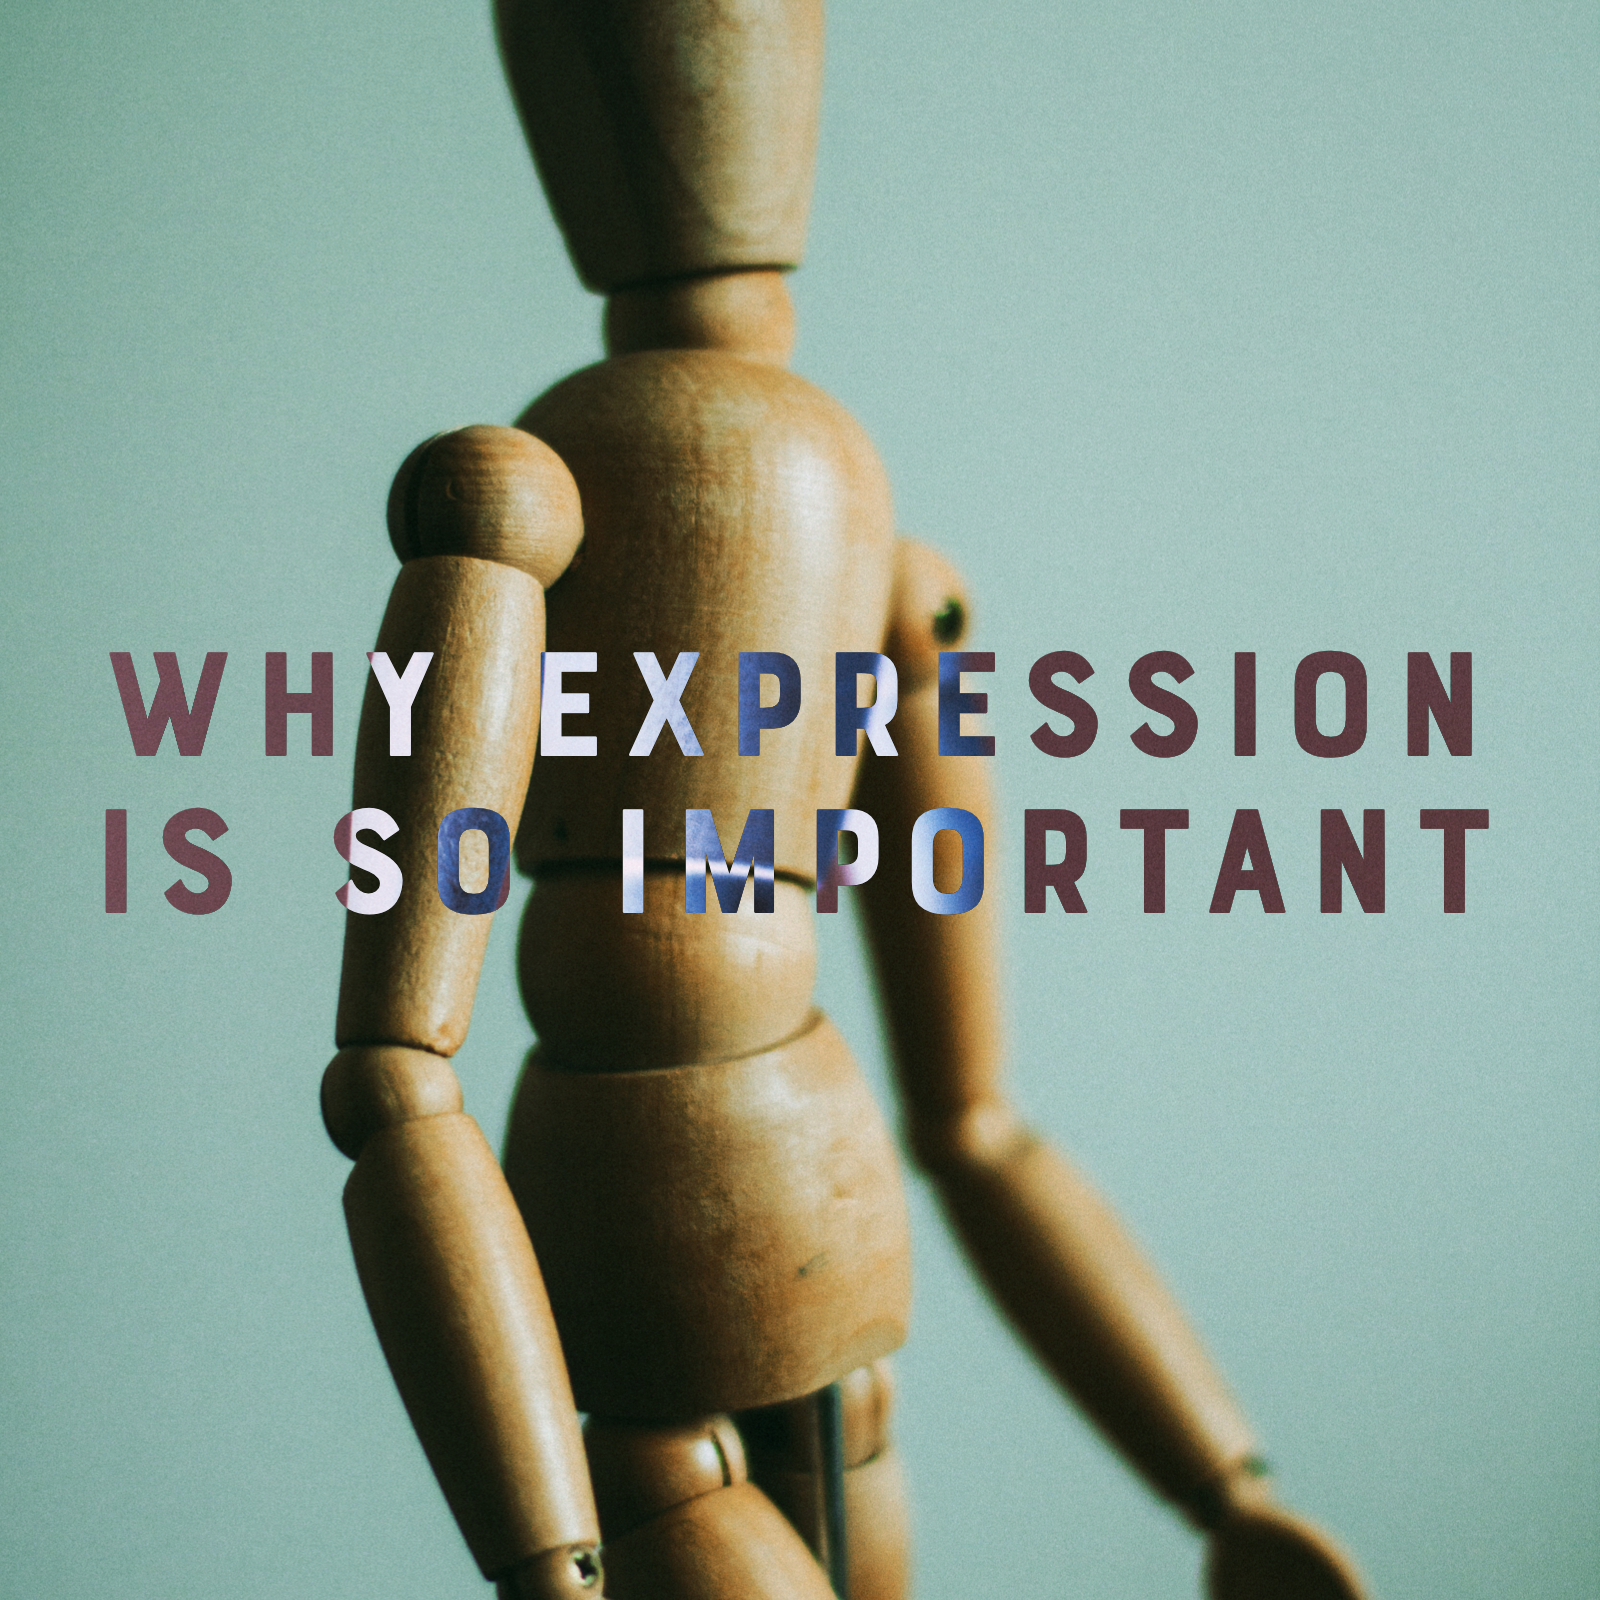 Why Expression is so important